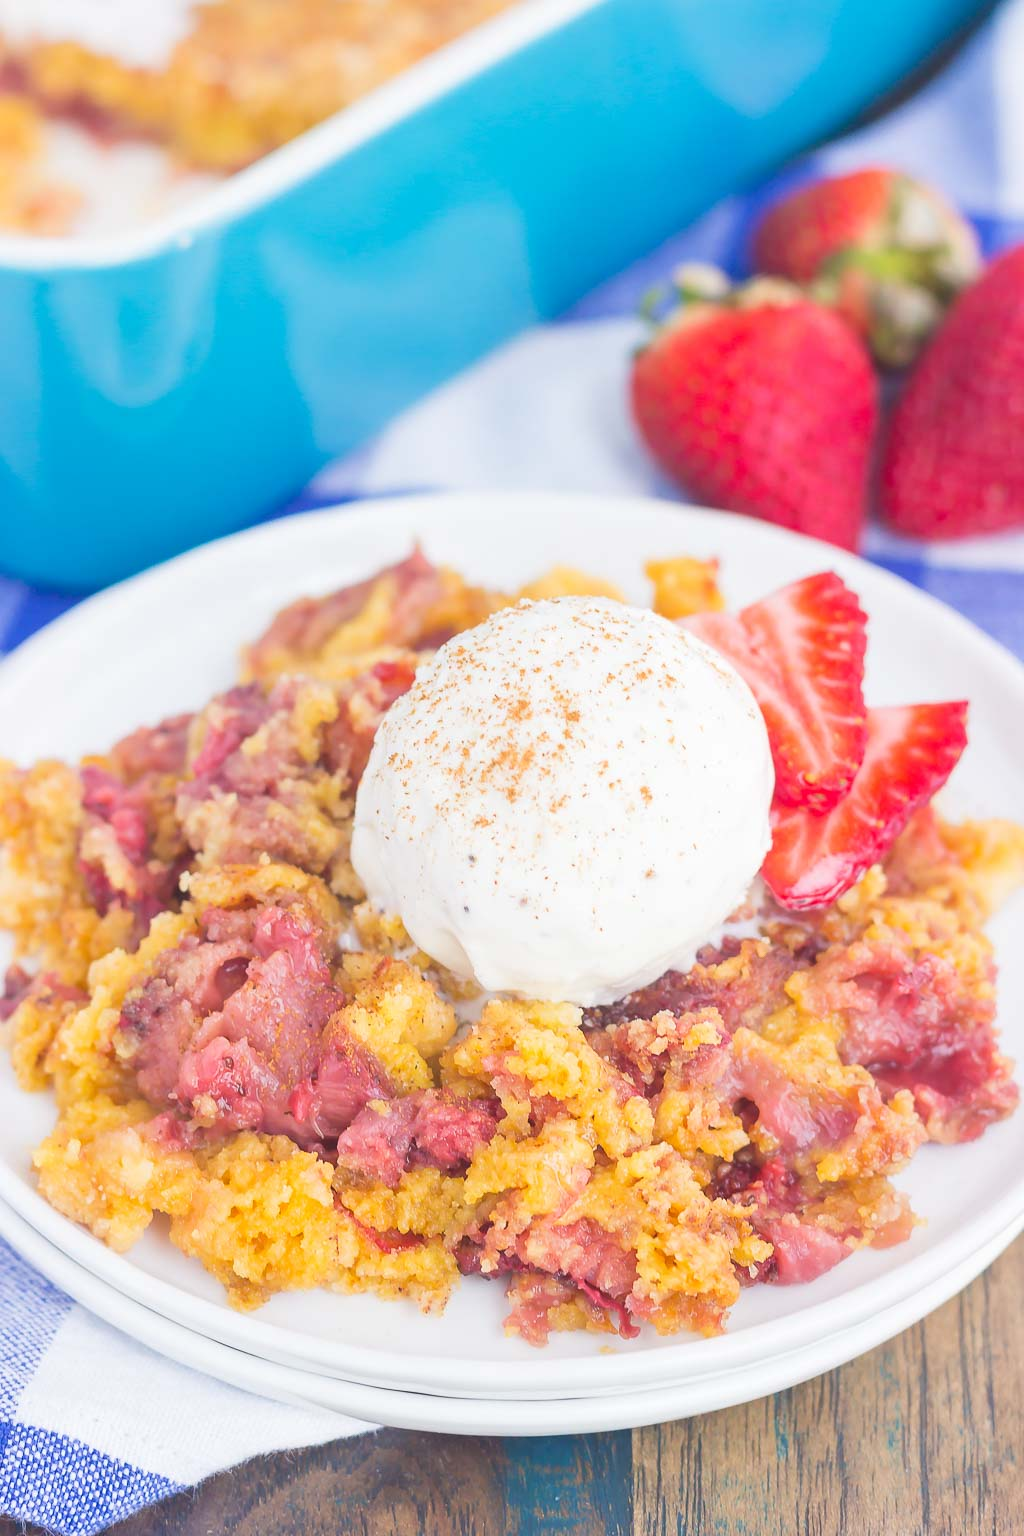 This Strawberry Cinnamon Dump Cake is a deliciously easy dessert that's loaded with flavor. With just four ingredients and hardly any prep time, this simple cake tastes like your favorite cobbler, but without all of the work. Filled with fresh strawberries, a hint of cinnamon and topped with a buttery, crumbly topping, this dessert is sure to be a winner all year long!